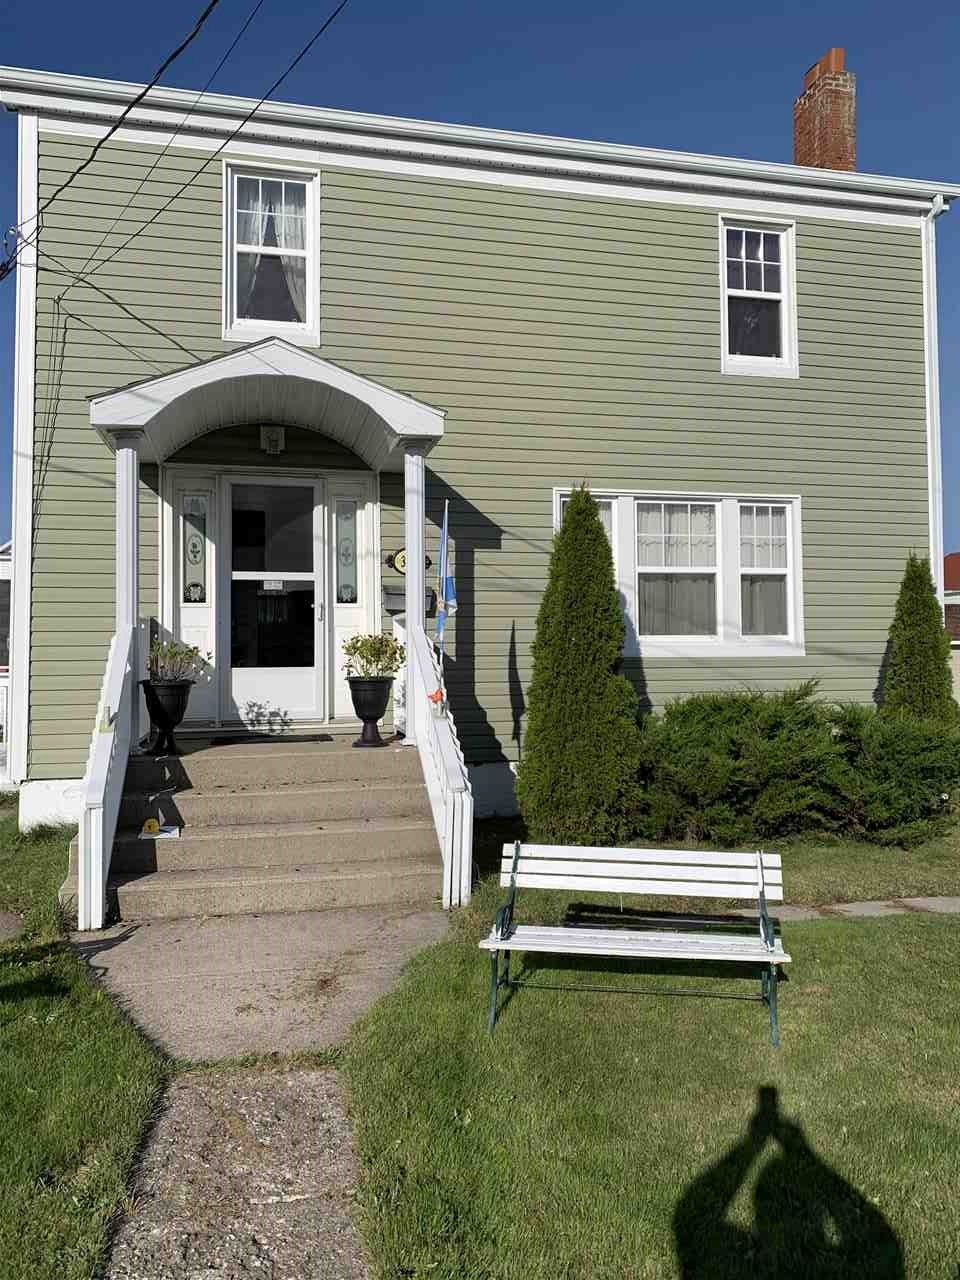 Main Photo: 379 Smith Street in New Waterford: 204-New Waterford Residential for sale (Cape Breton)  : MLS®# 202022300